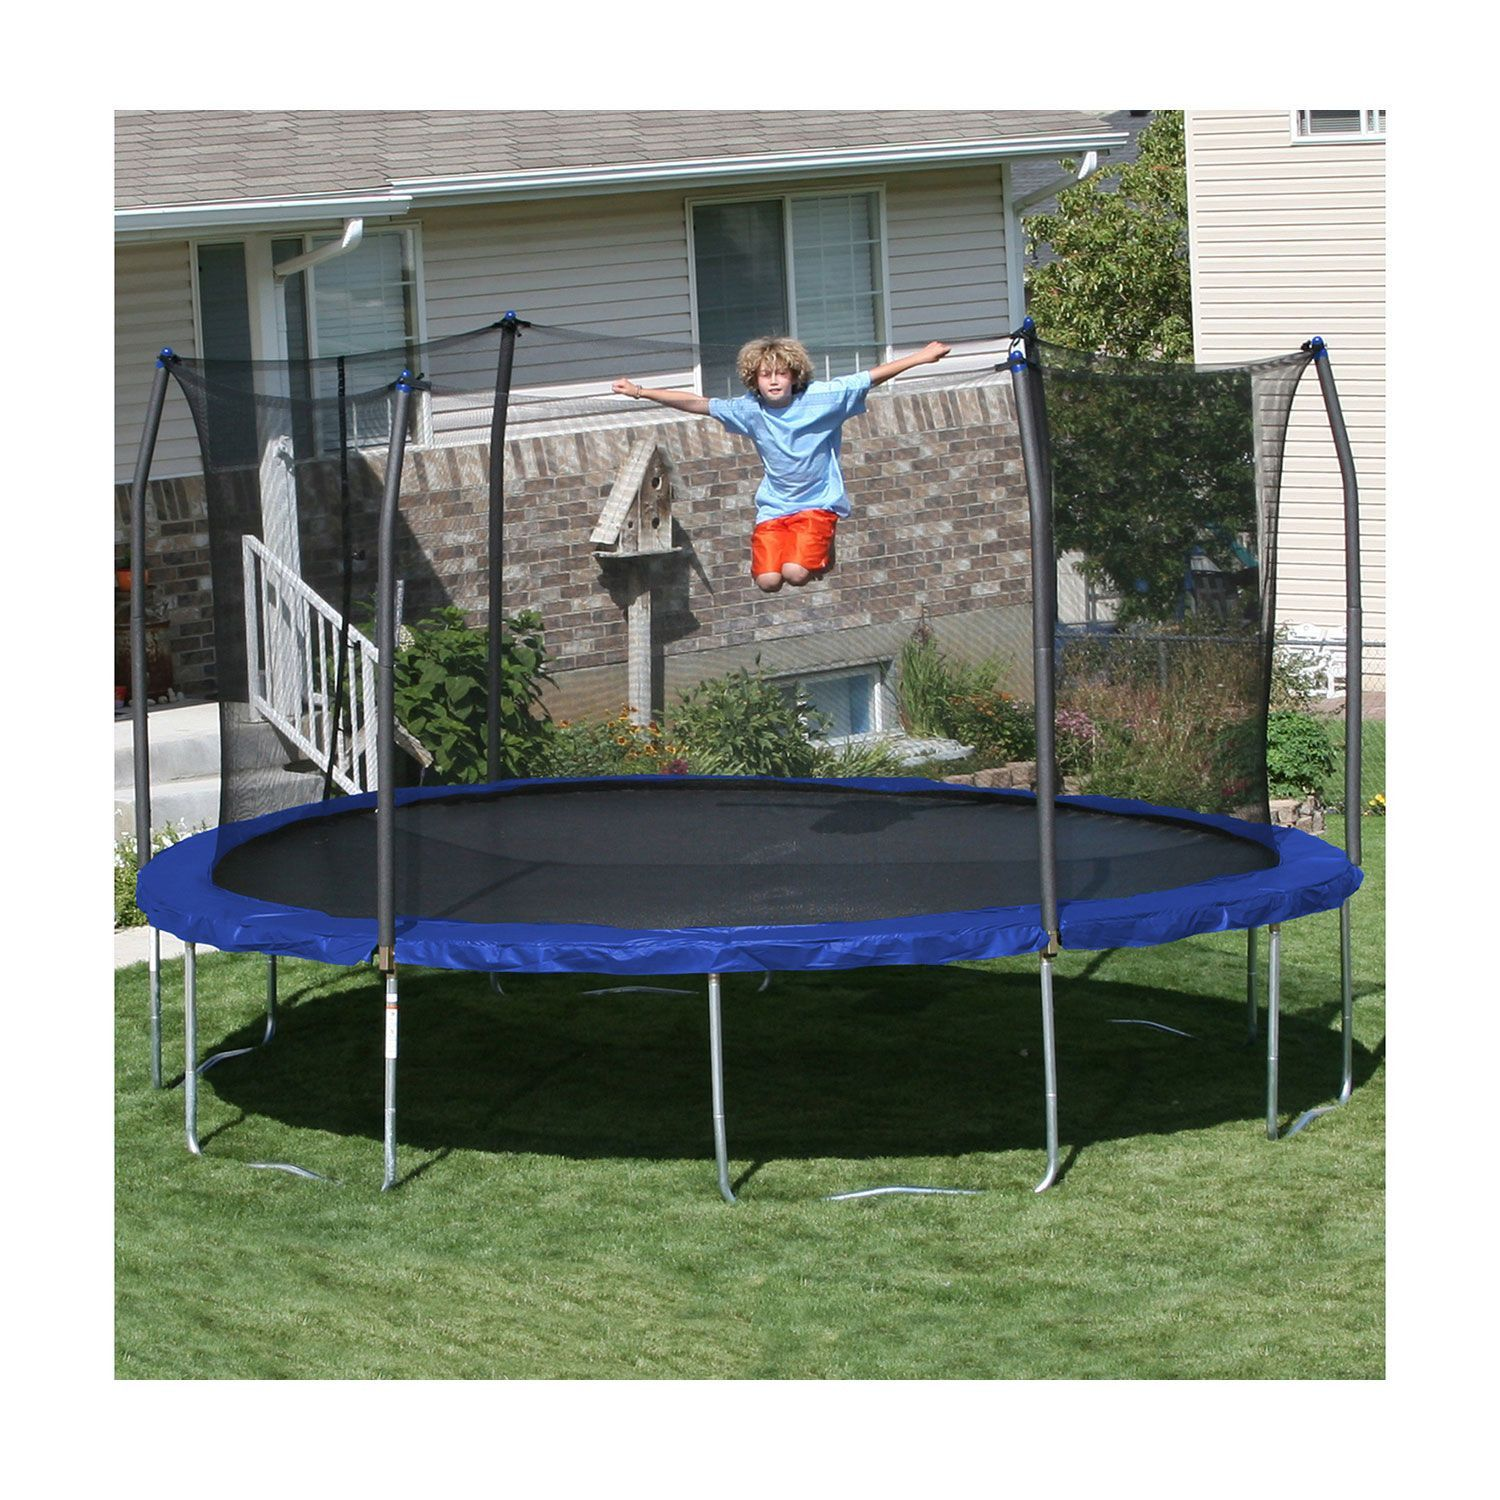 15' ft. Round Trampoline and Enclosure Combo - Royal Blue